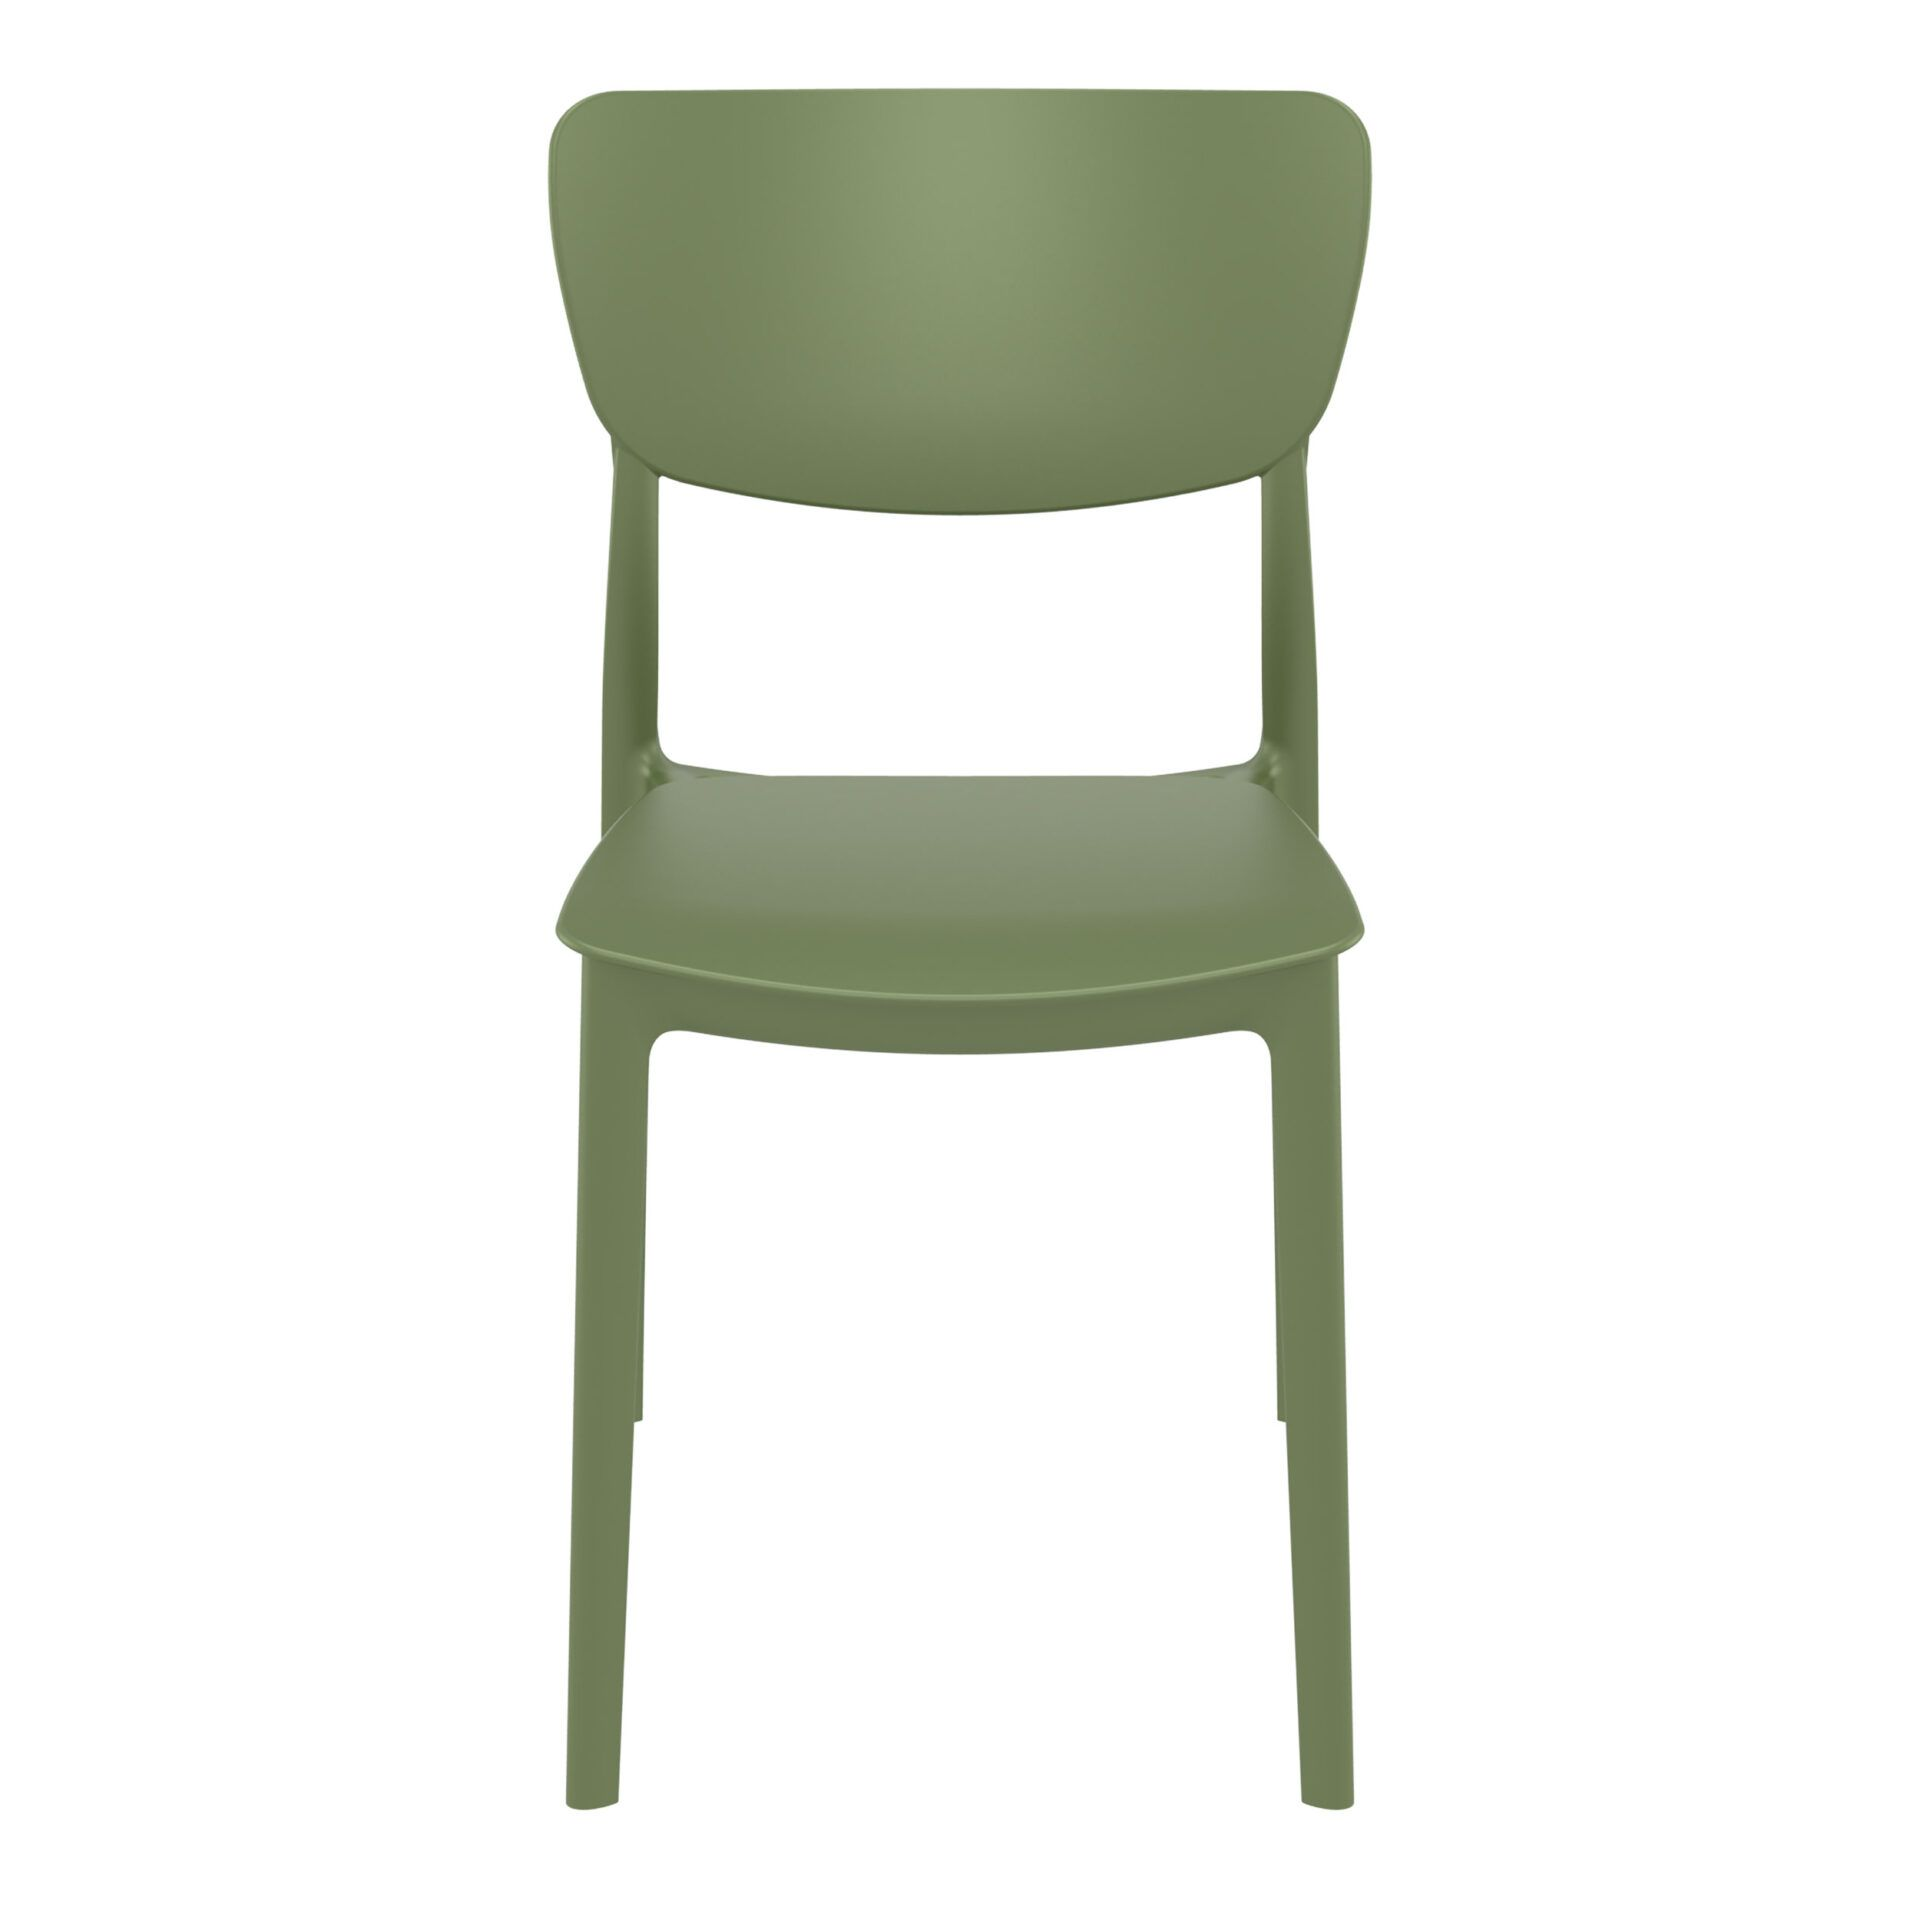 polypropylene outdoor dining monna chair olive green front